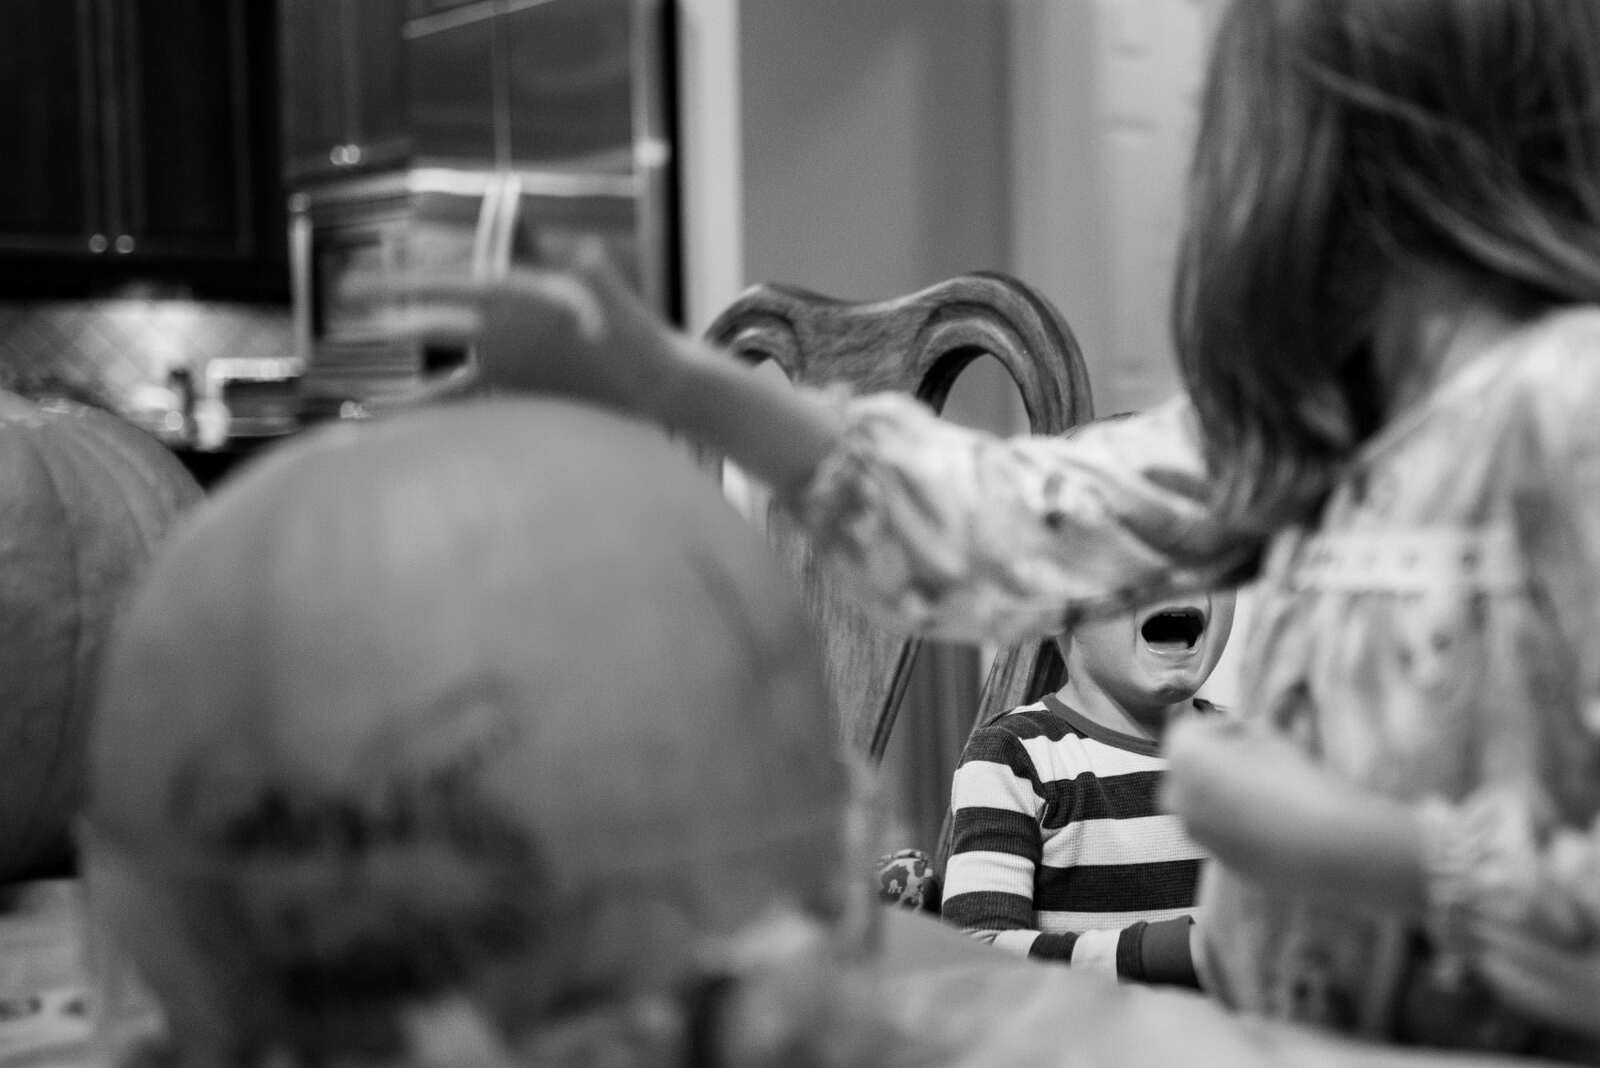 Boy crying as sister carves pumpkin during Atlanta Day In The Life family documentary